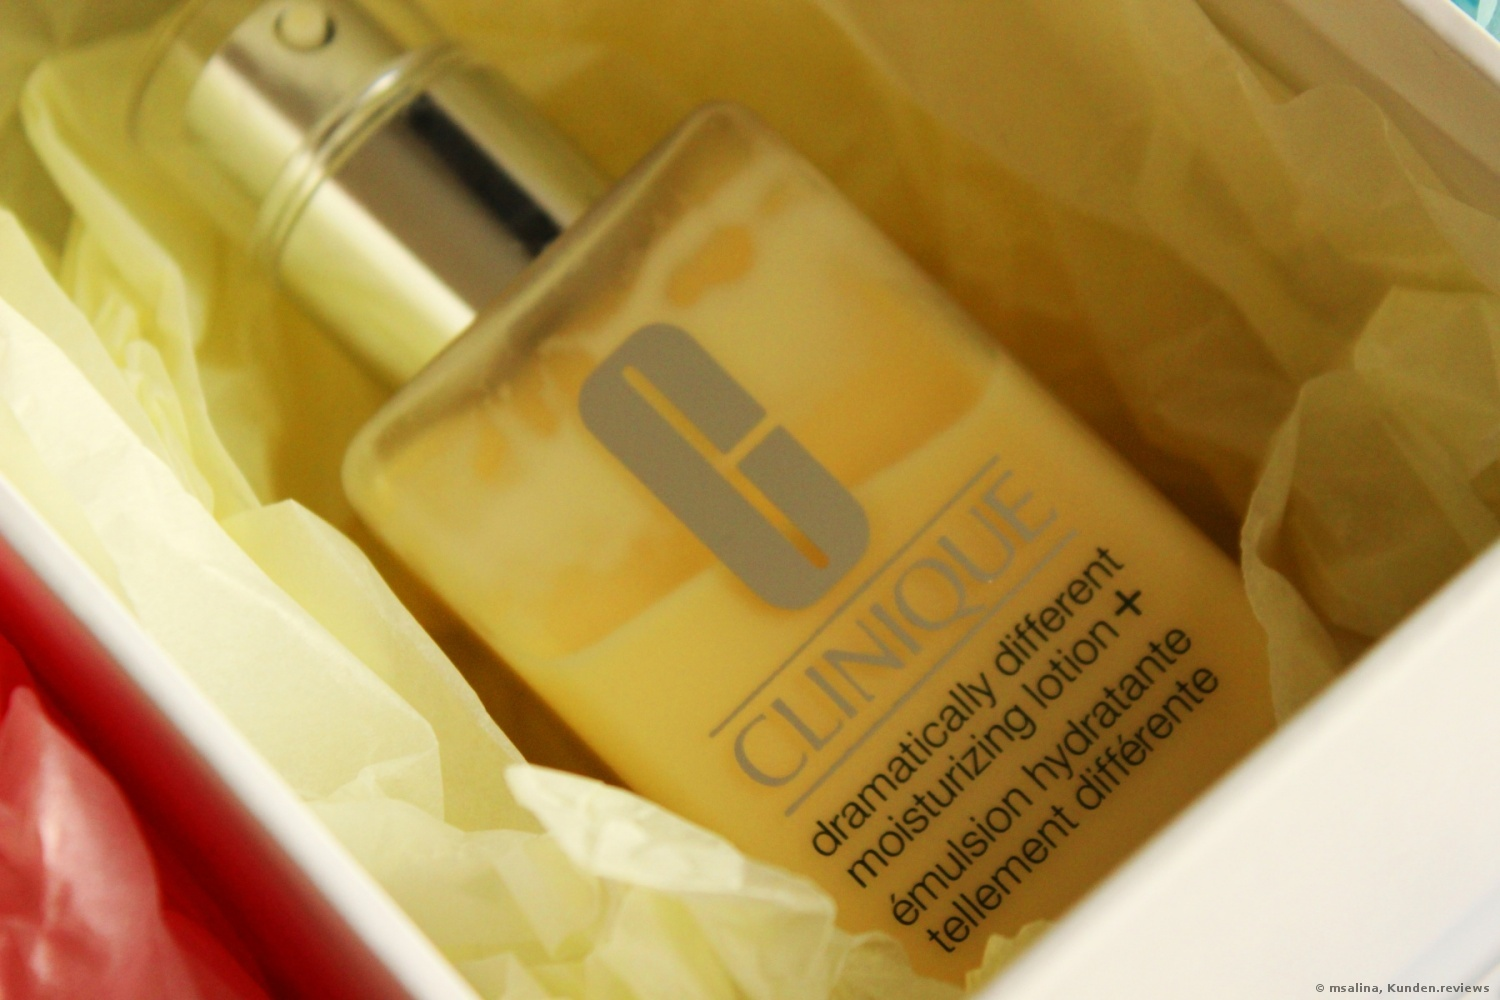 CLINIQUE Dramatically Different Moisturizing Lotion + Gesichtslotion Foto